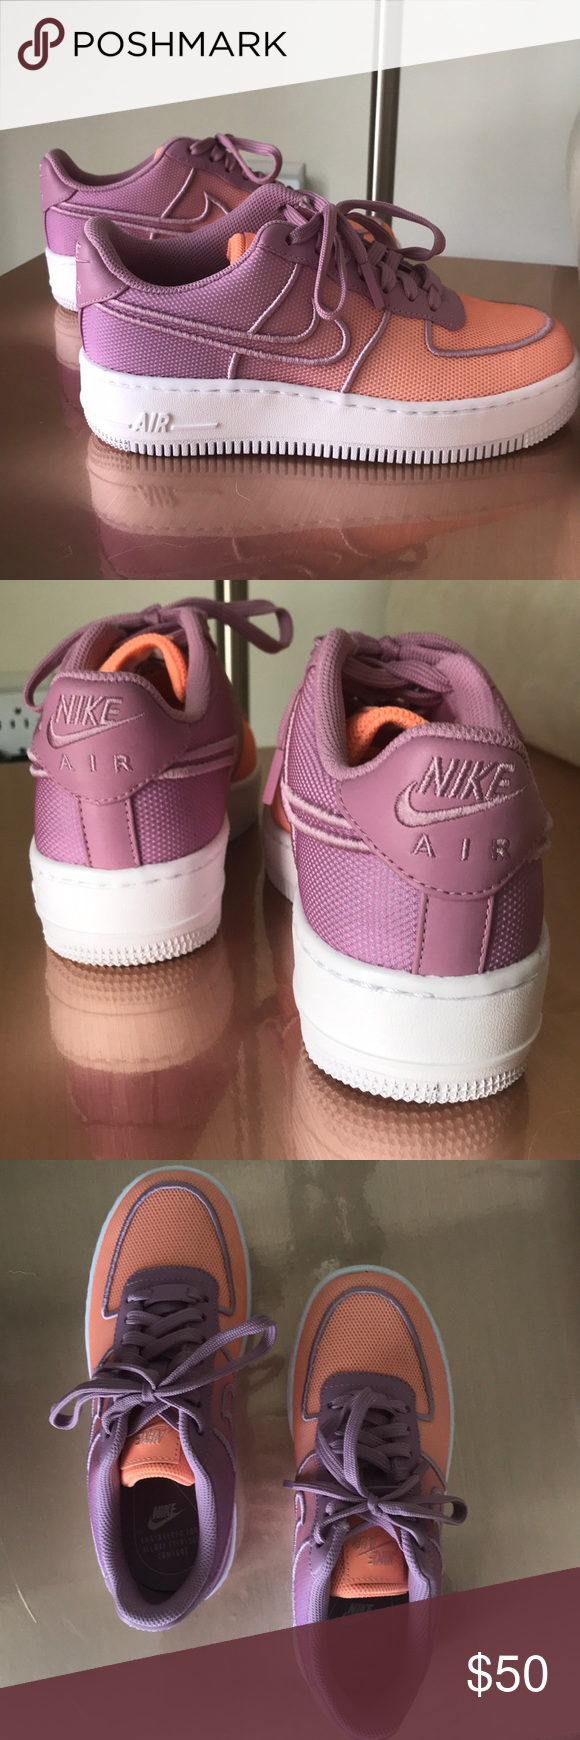 NWOT Nike Air Force 1 Low Upstep BR Sz. 6.5 Brand new, just